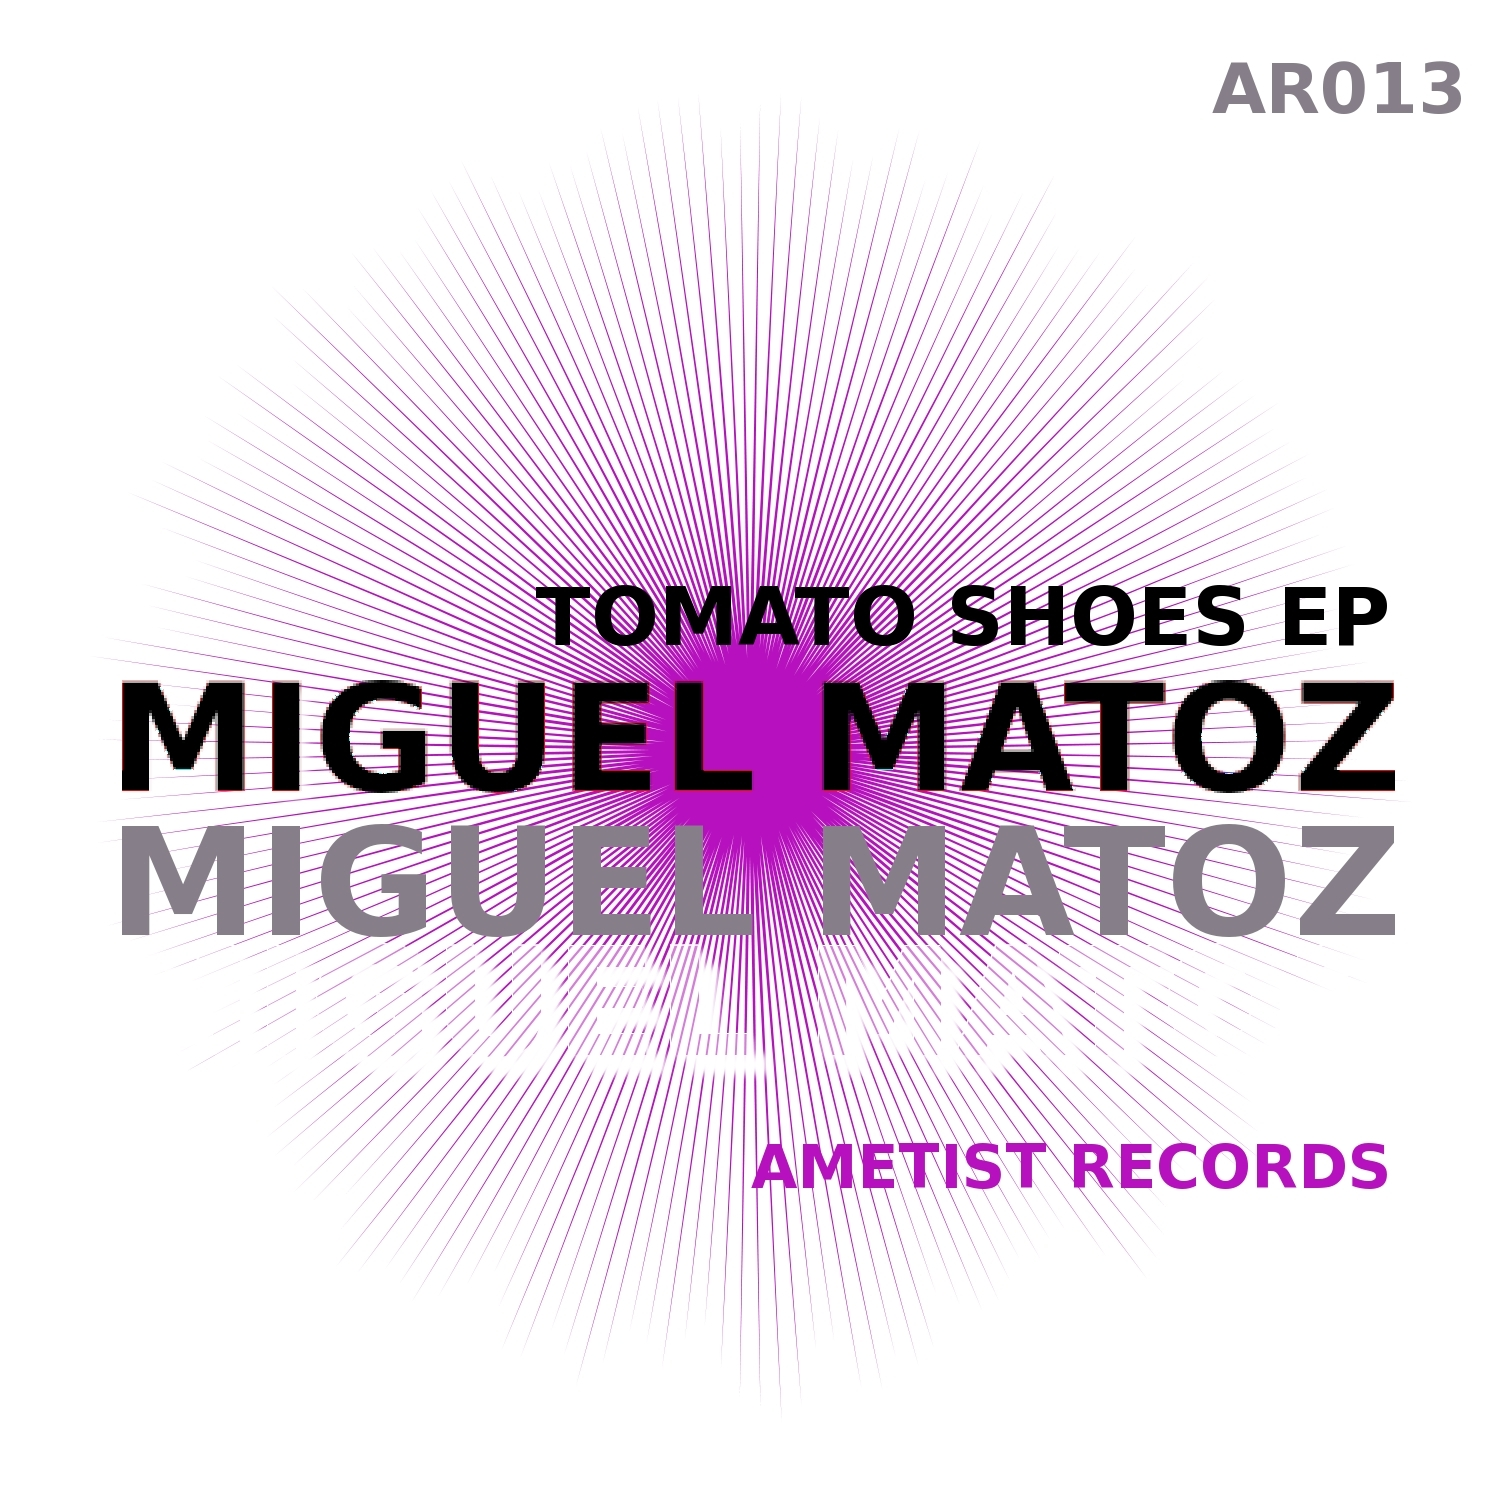 Miguel Matoz - Housy Special (Original mix)